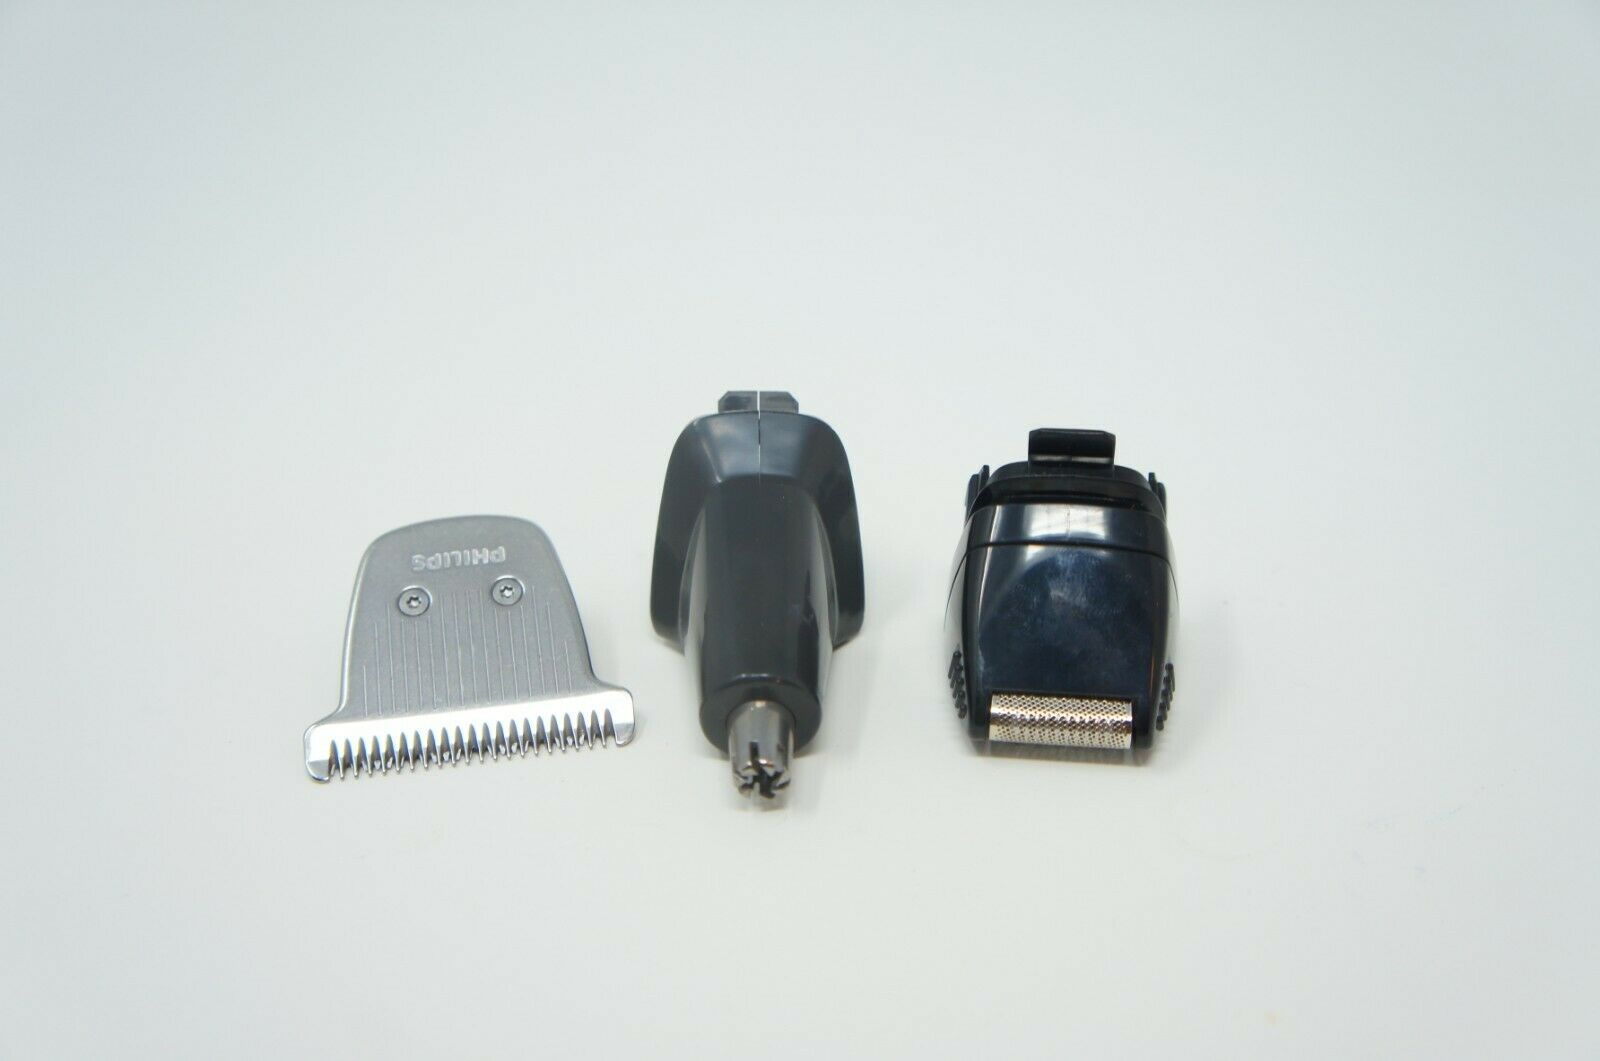 3 TRIMMERS EXTRA WIDE NOSE PRECISION SHAVER Philips Norelco MG7750/49